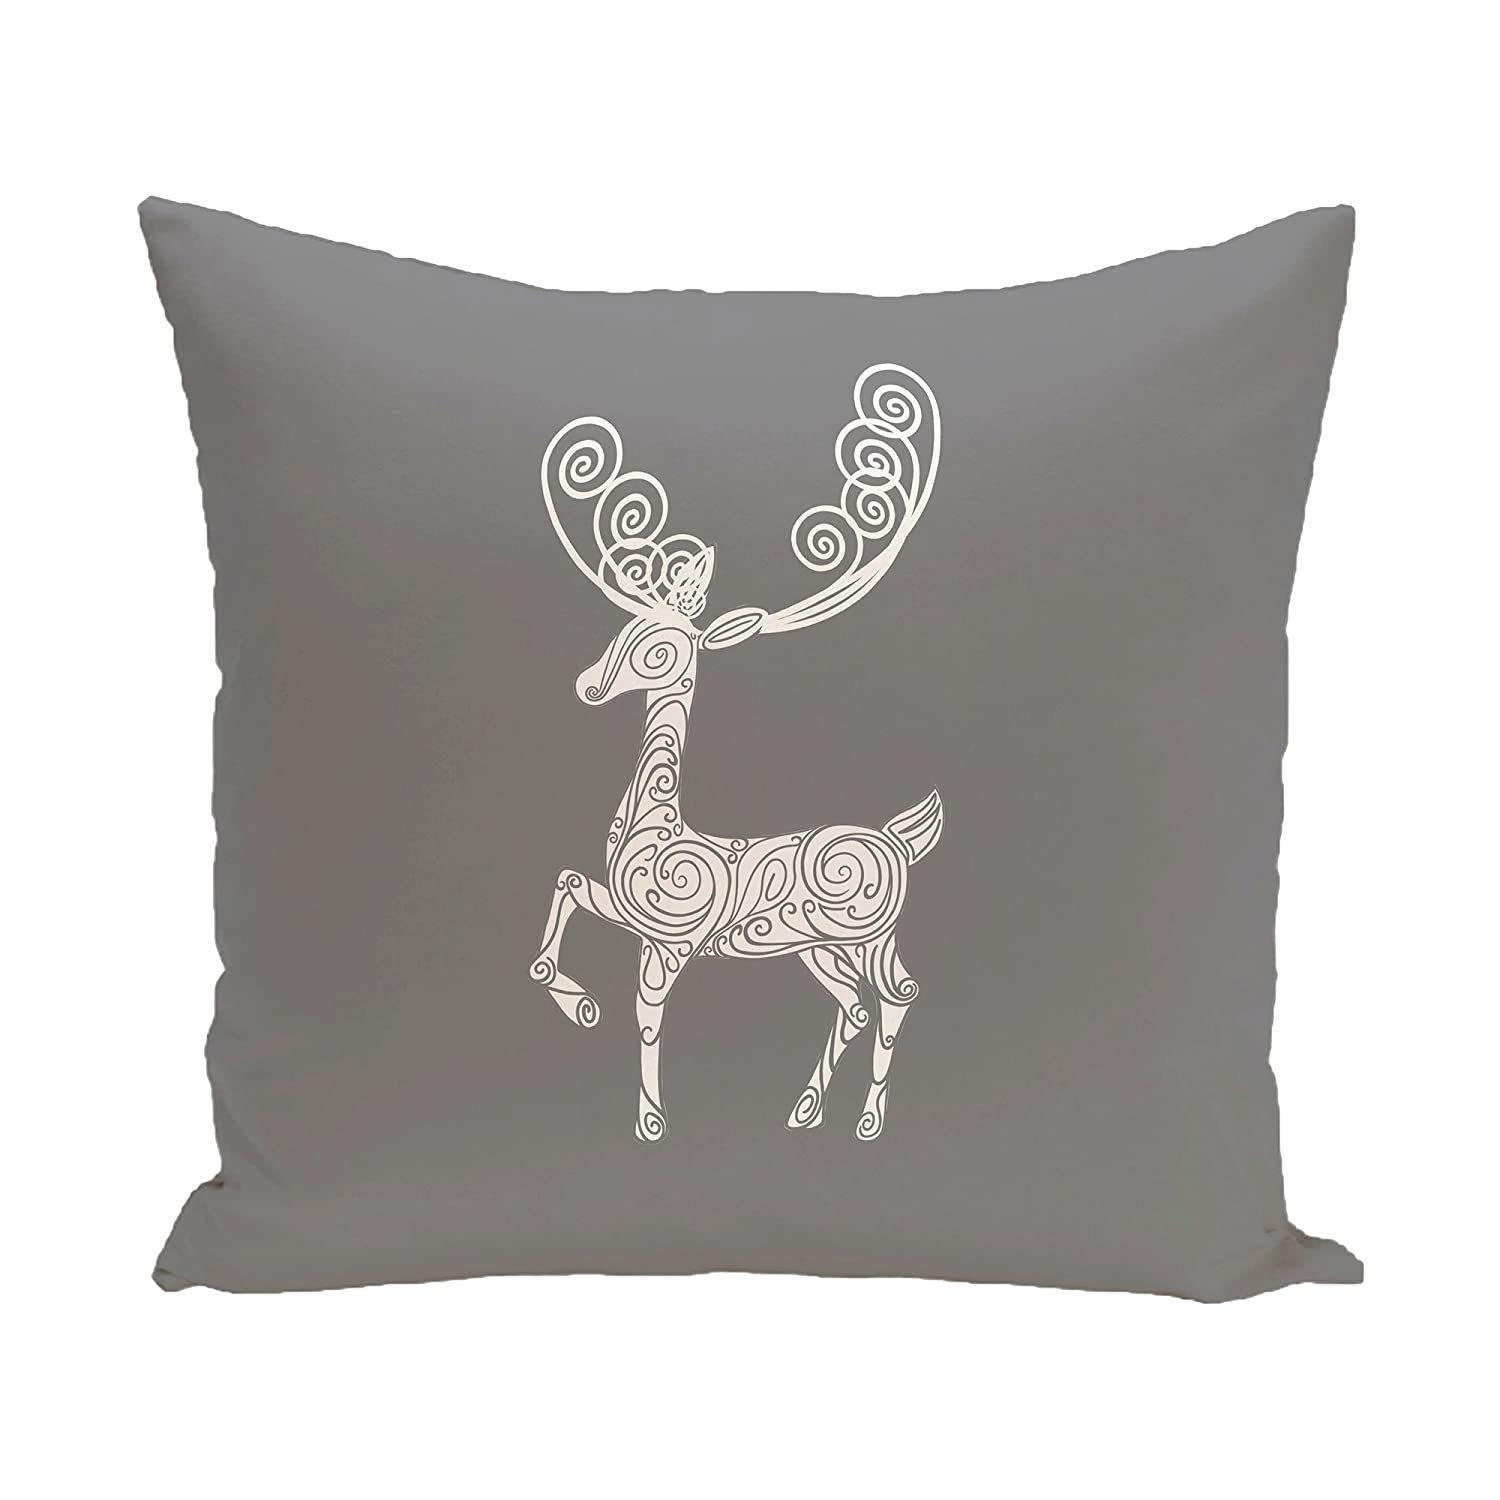 E by design Deer Crossing Decorative Holiday Animal Print Pillow 16 by 16 Gray